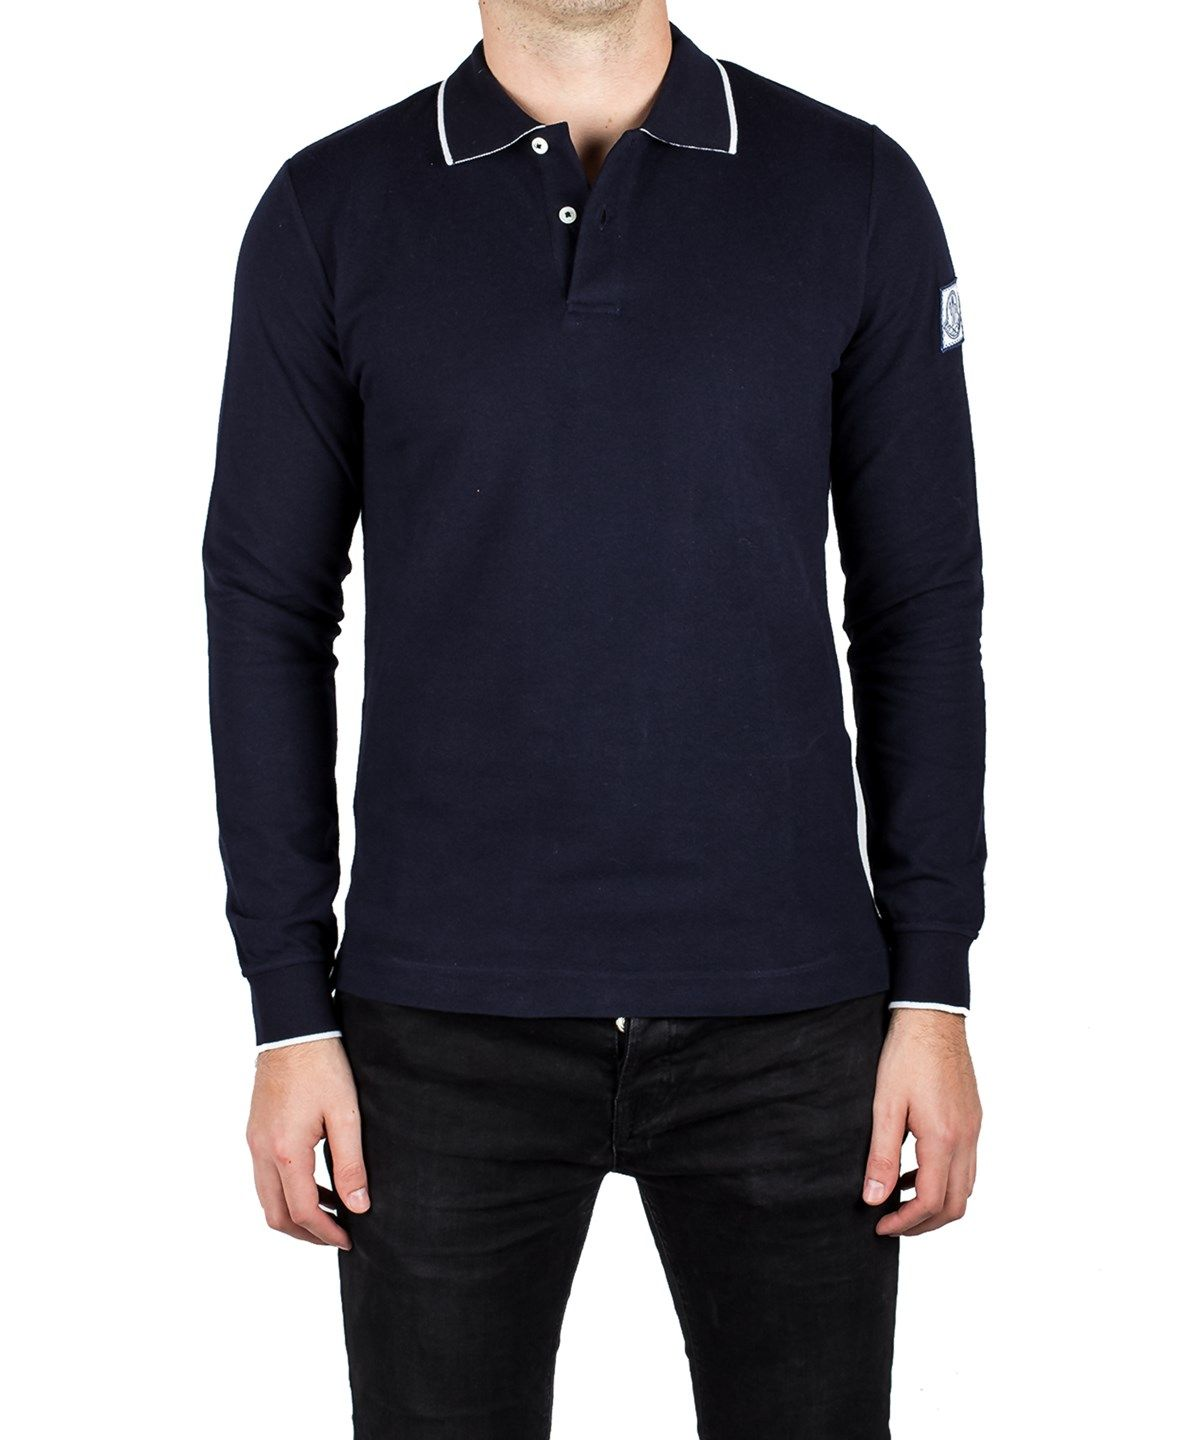 c8cdd50d37b0 MONCLER Moncler Men S Gamme Bleu Pique Cotton Long Sleeve Polo Shirt ...